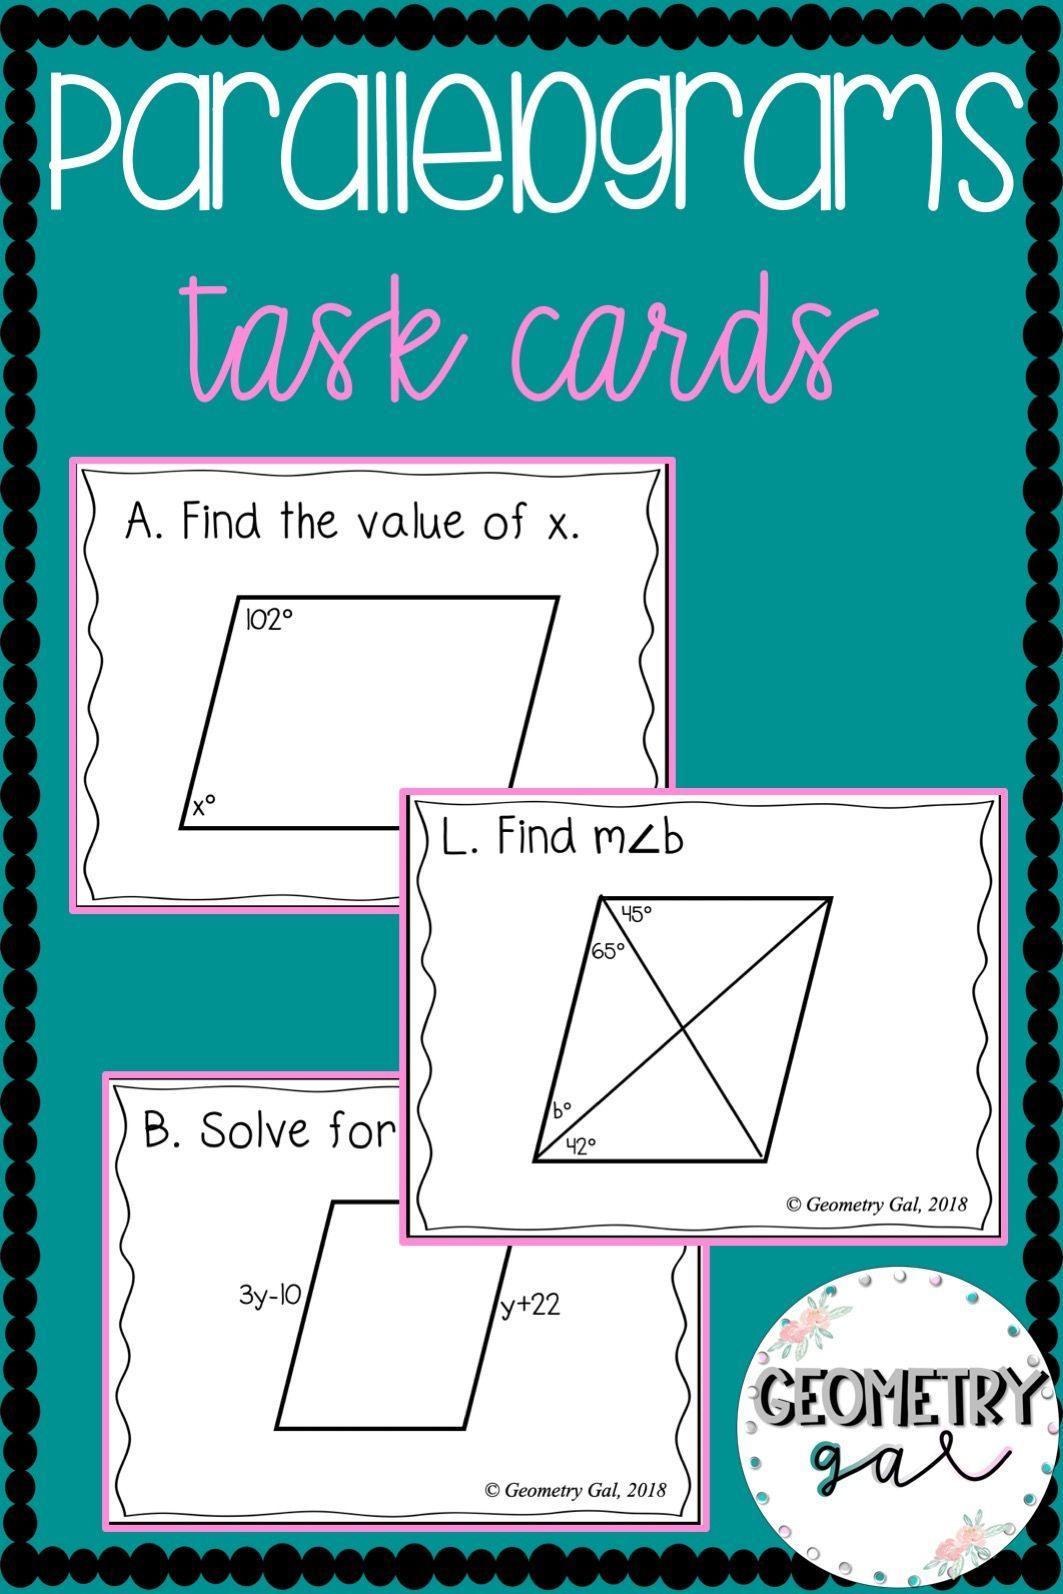 Parallelograms Task Cards